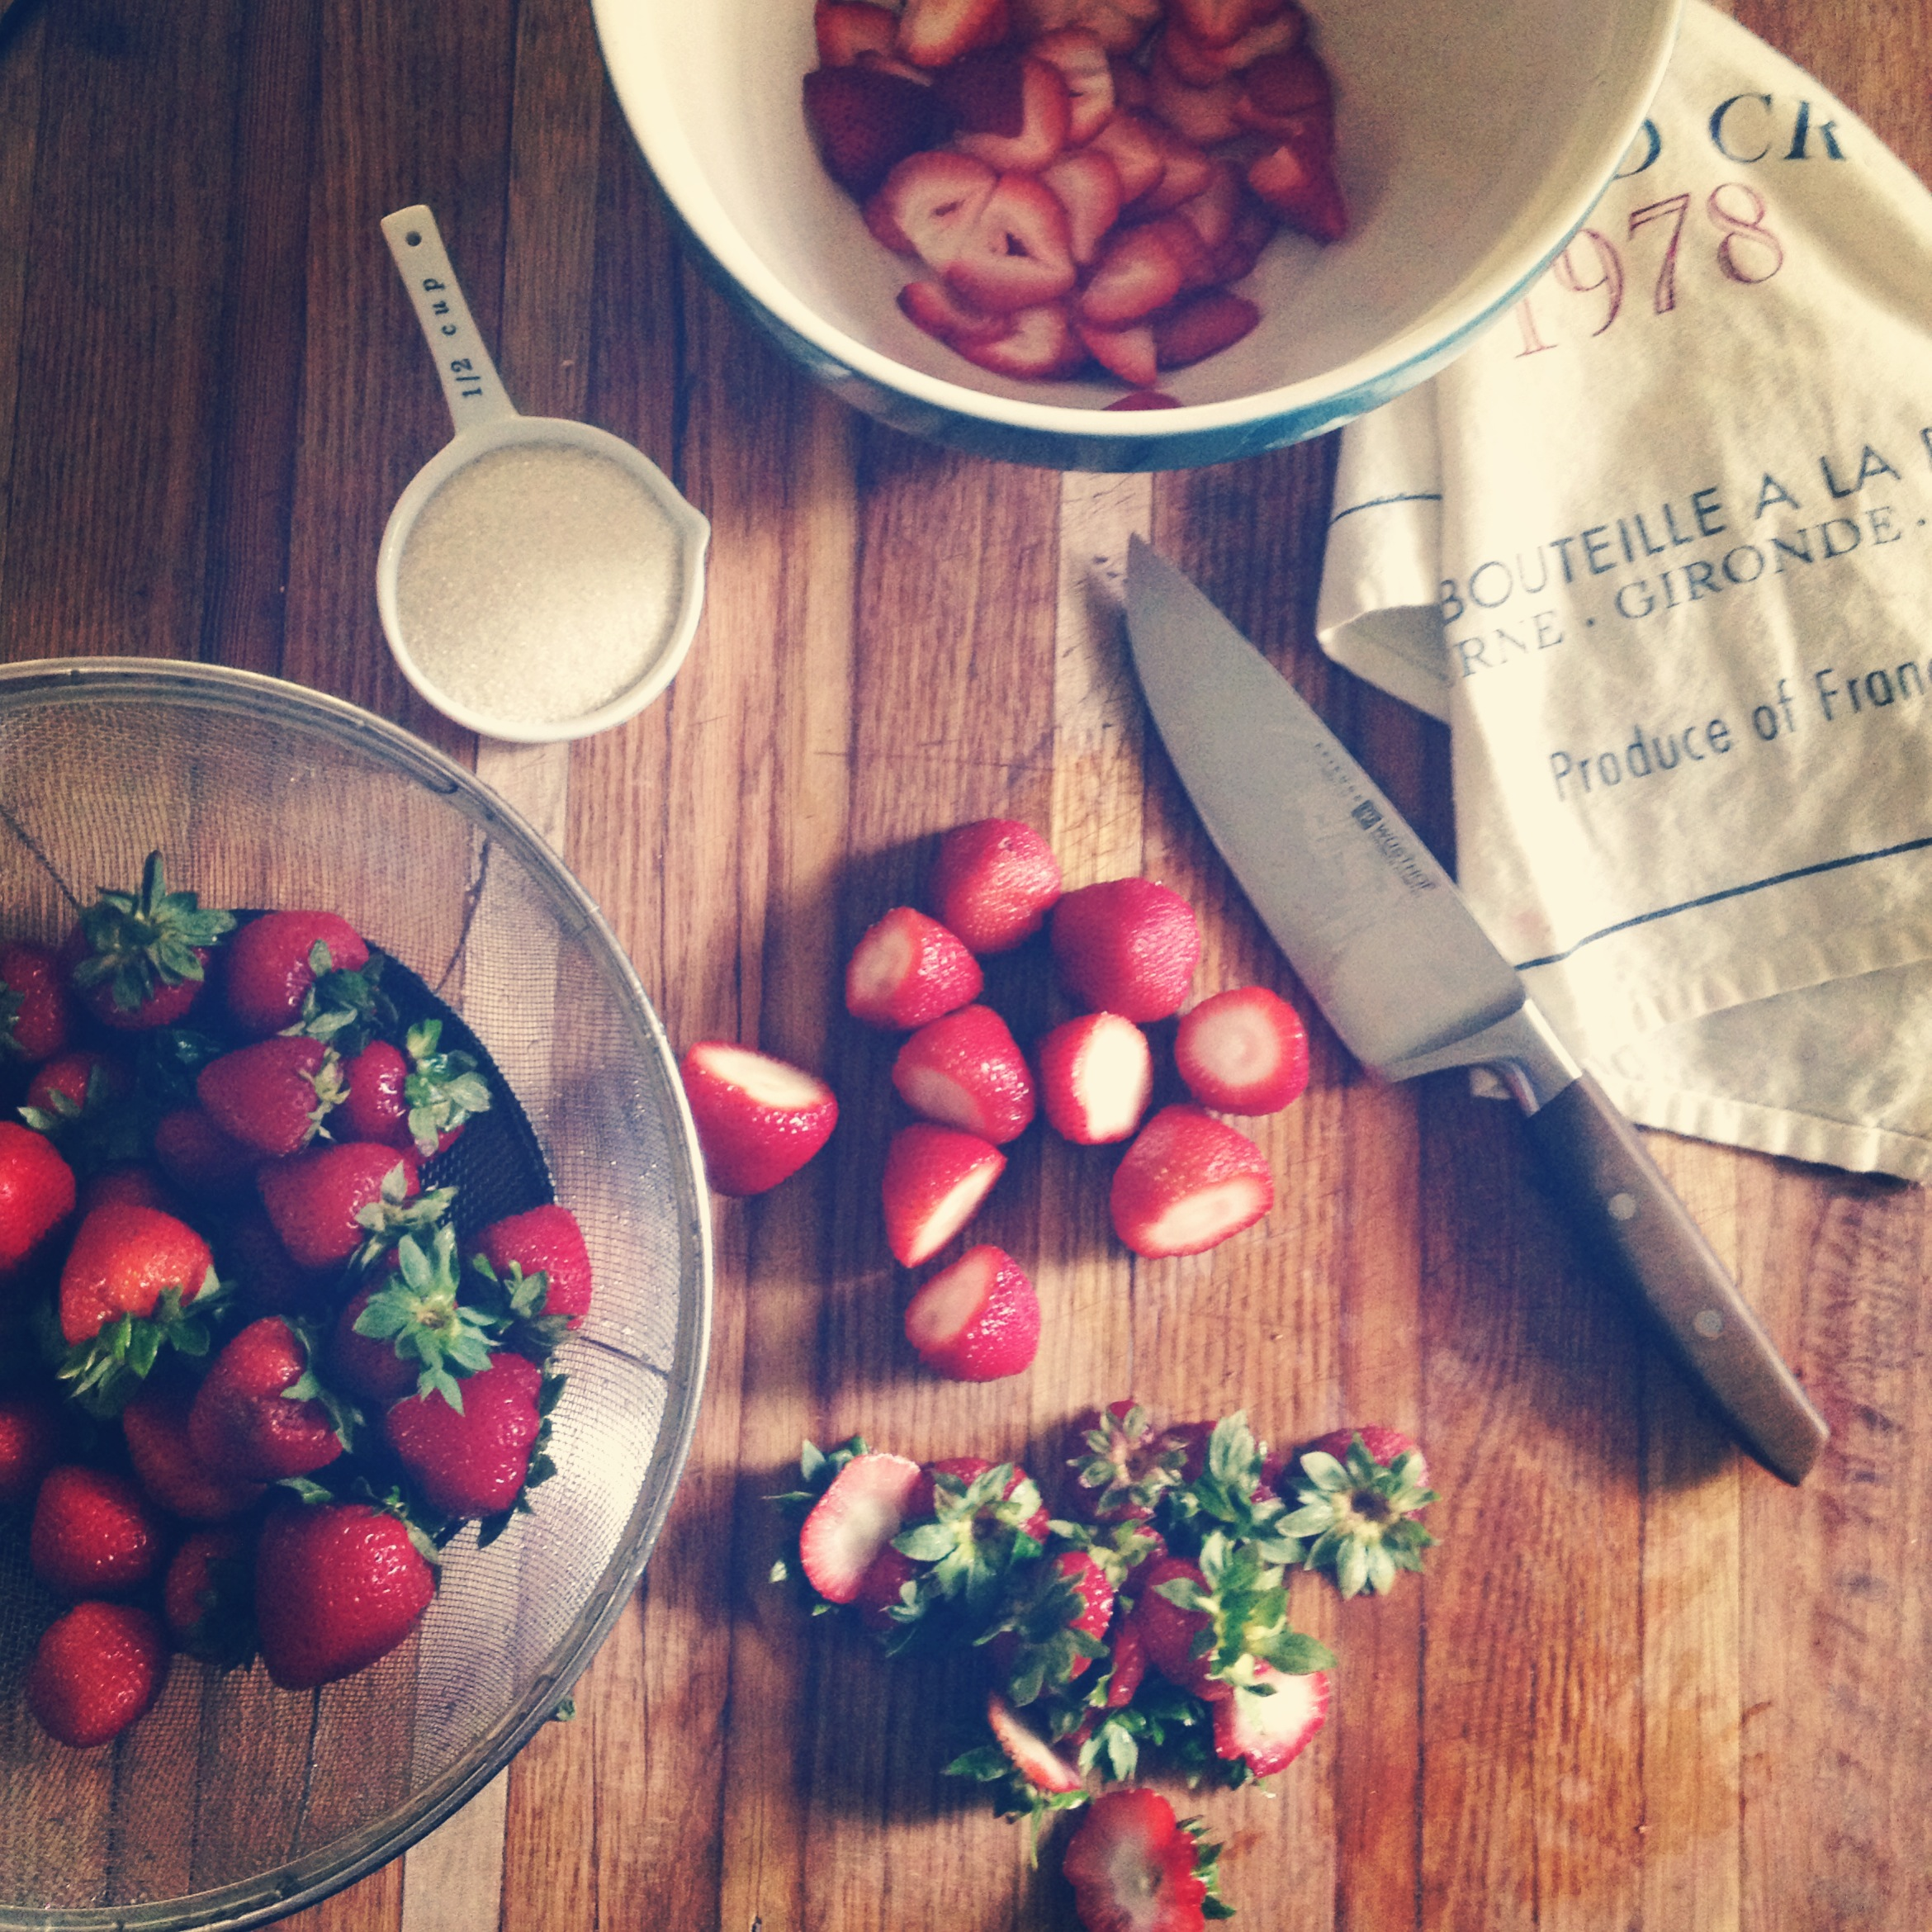 Summer strawberries are a theme at the cottage right now.